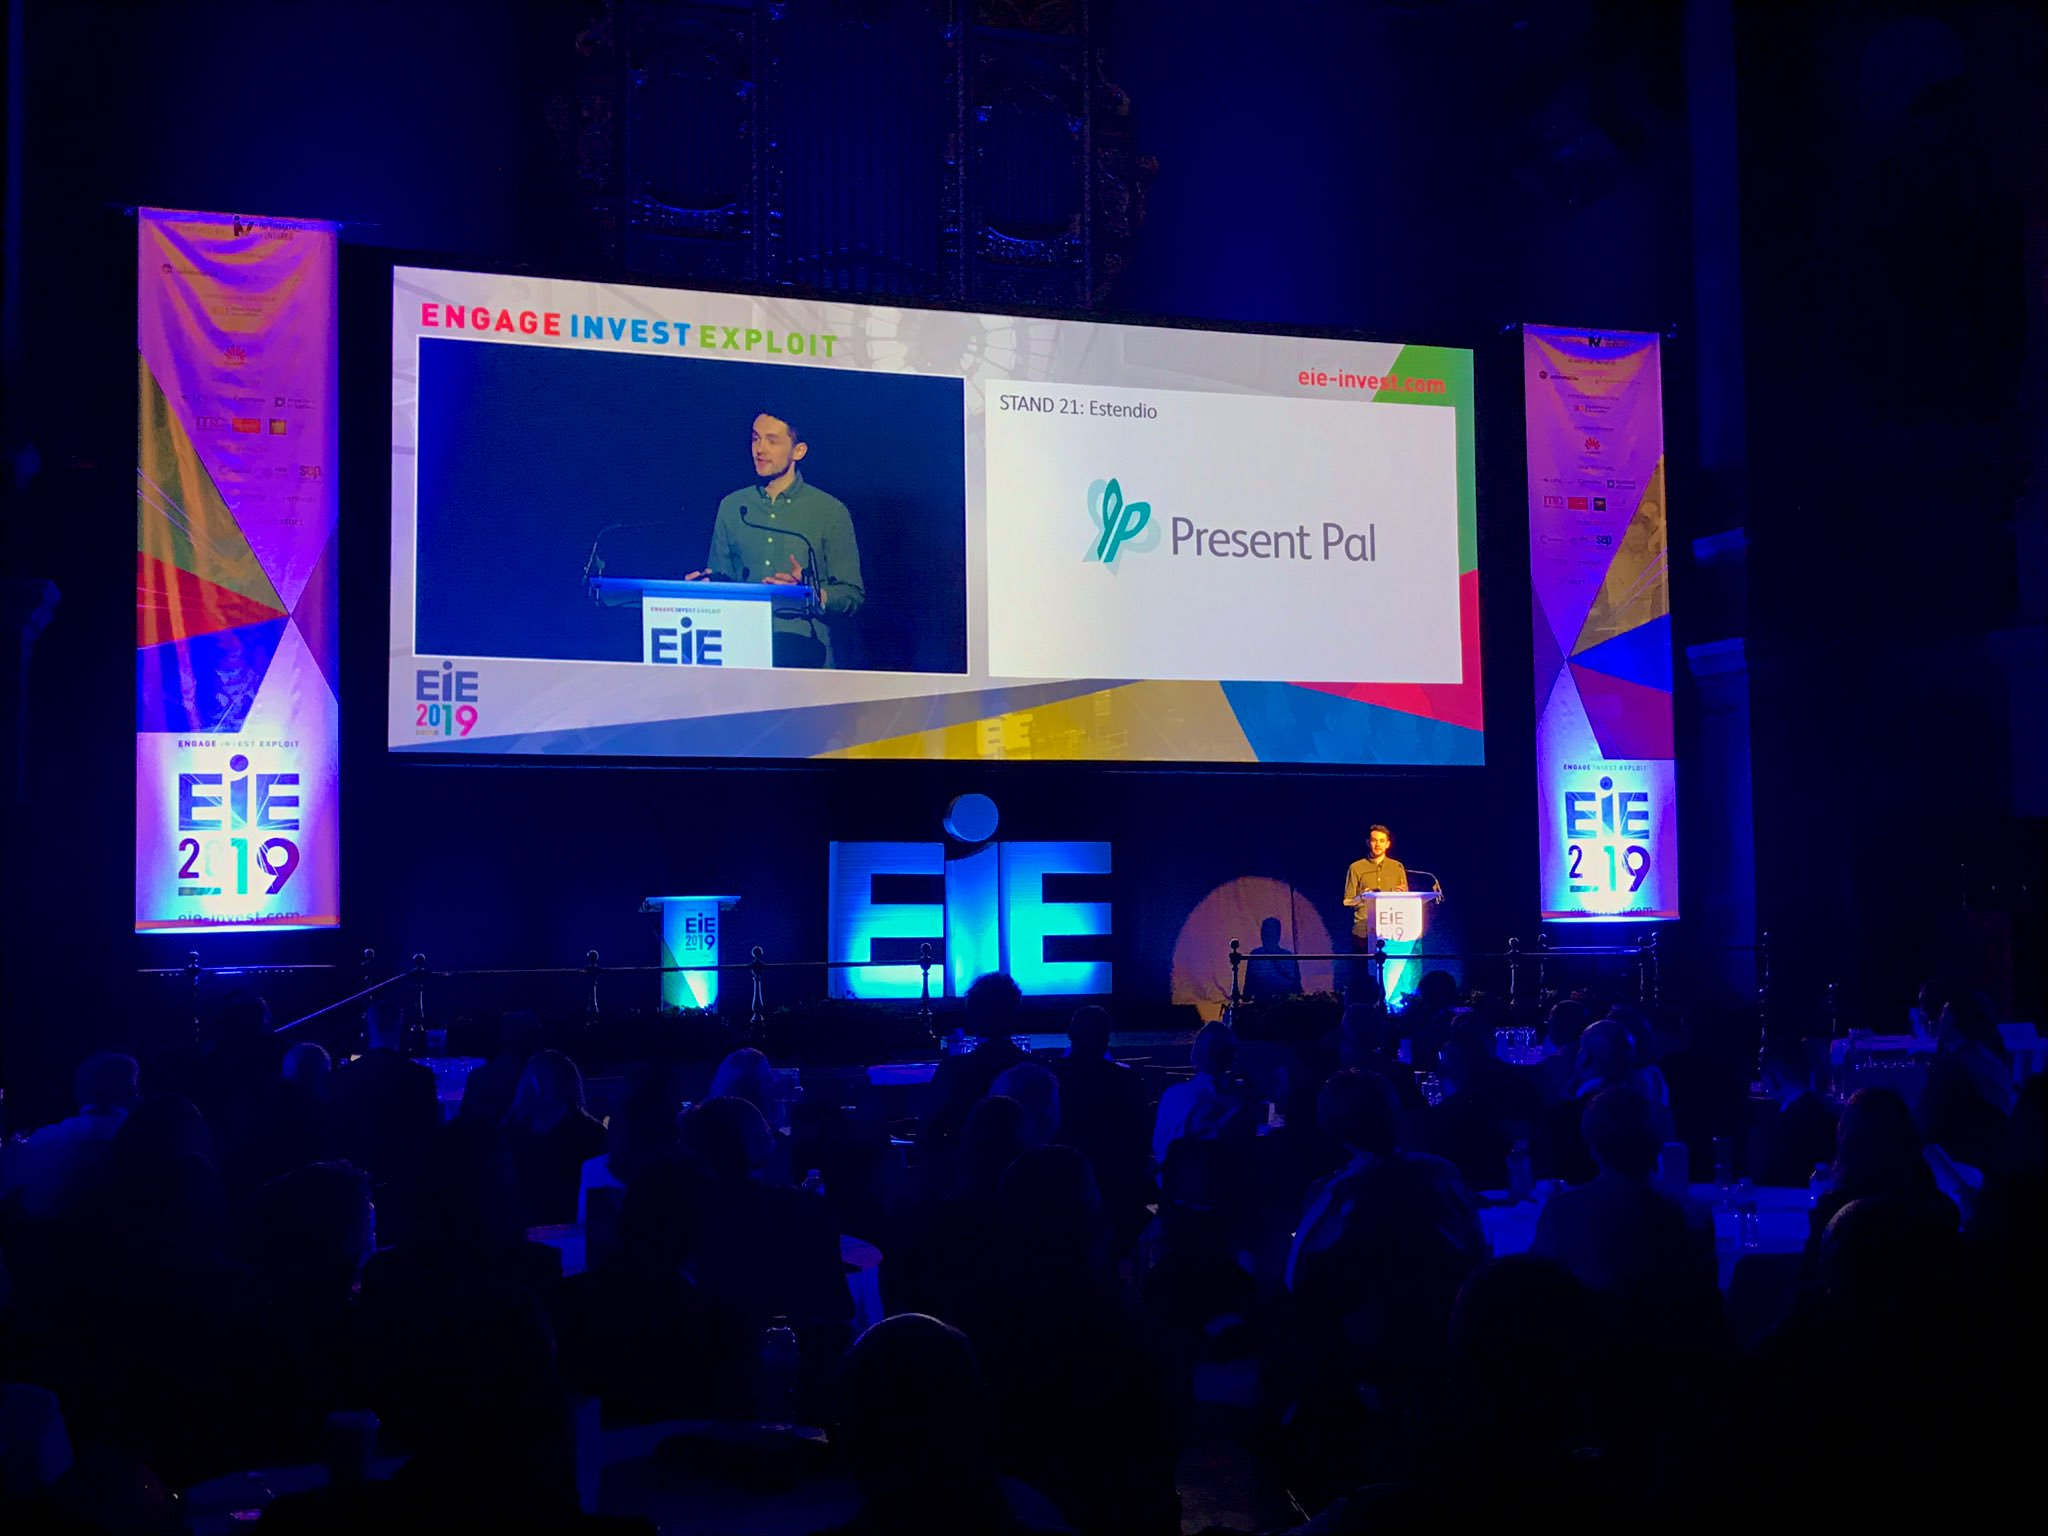 IMAGE: Chris Hughes pitching on stage at McEwan Hall for EIE 2019.